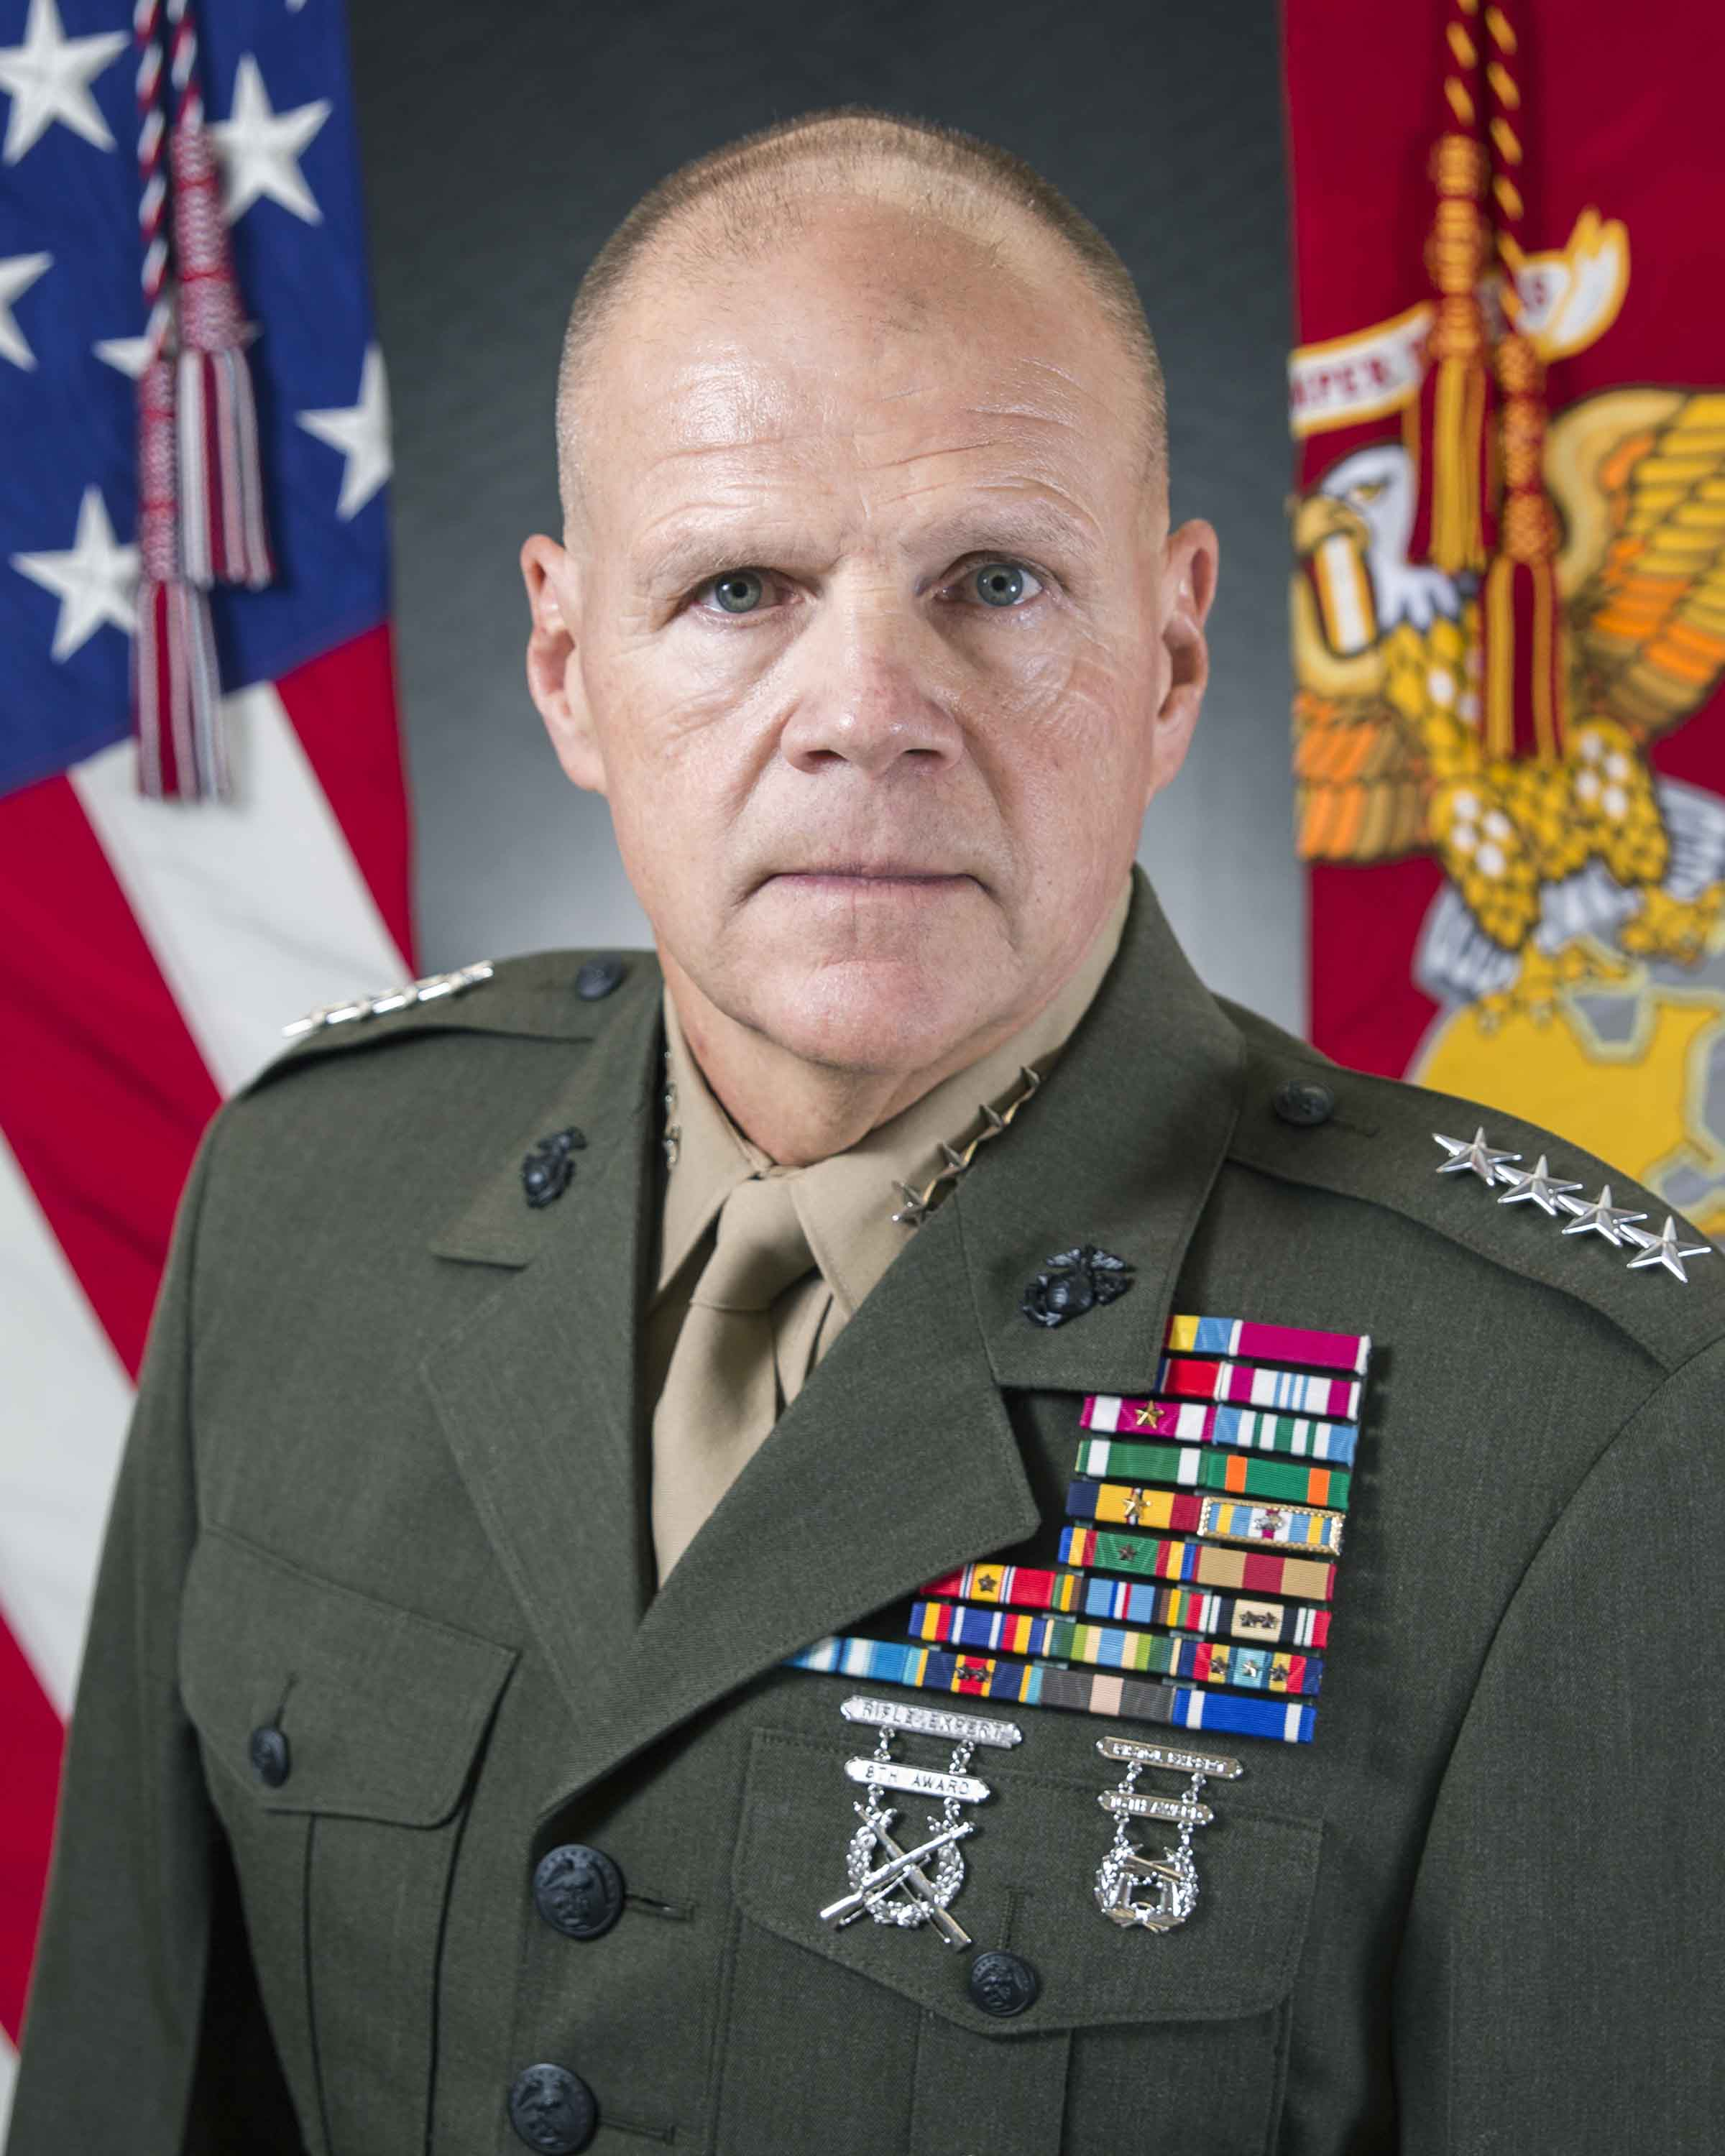 Biographies: General Robert B. Neller > U.S. DEPARTMENT OF DEFENSE